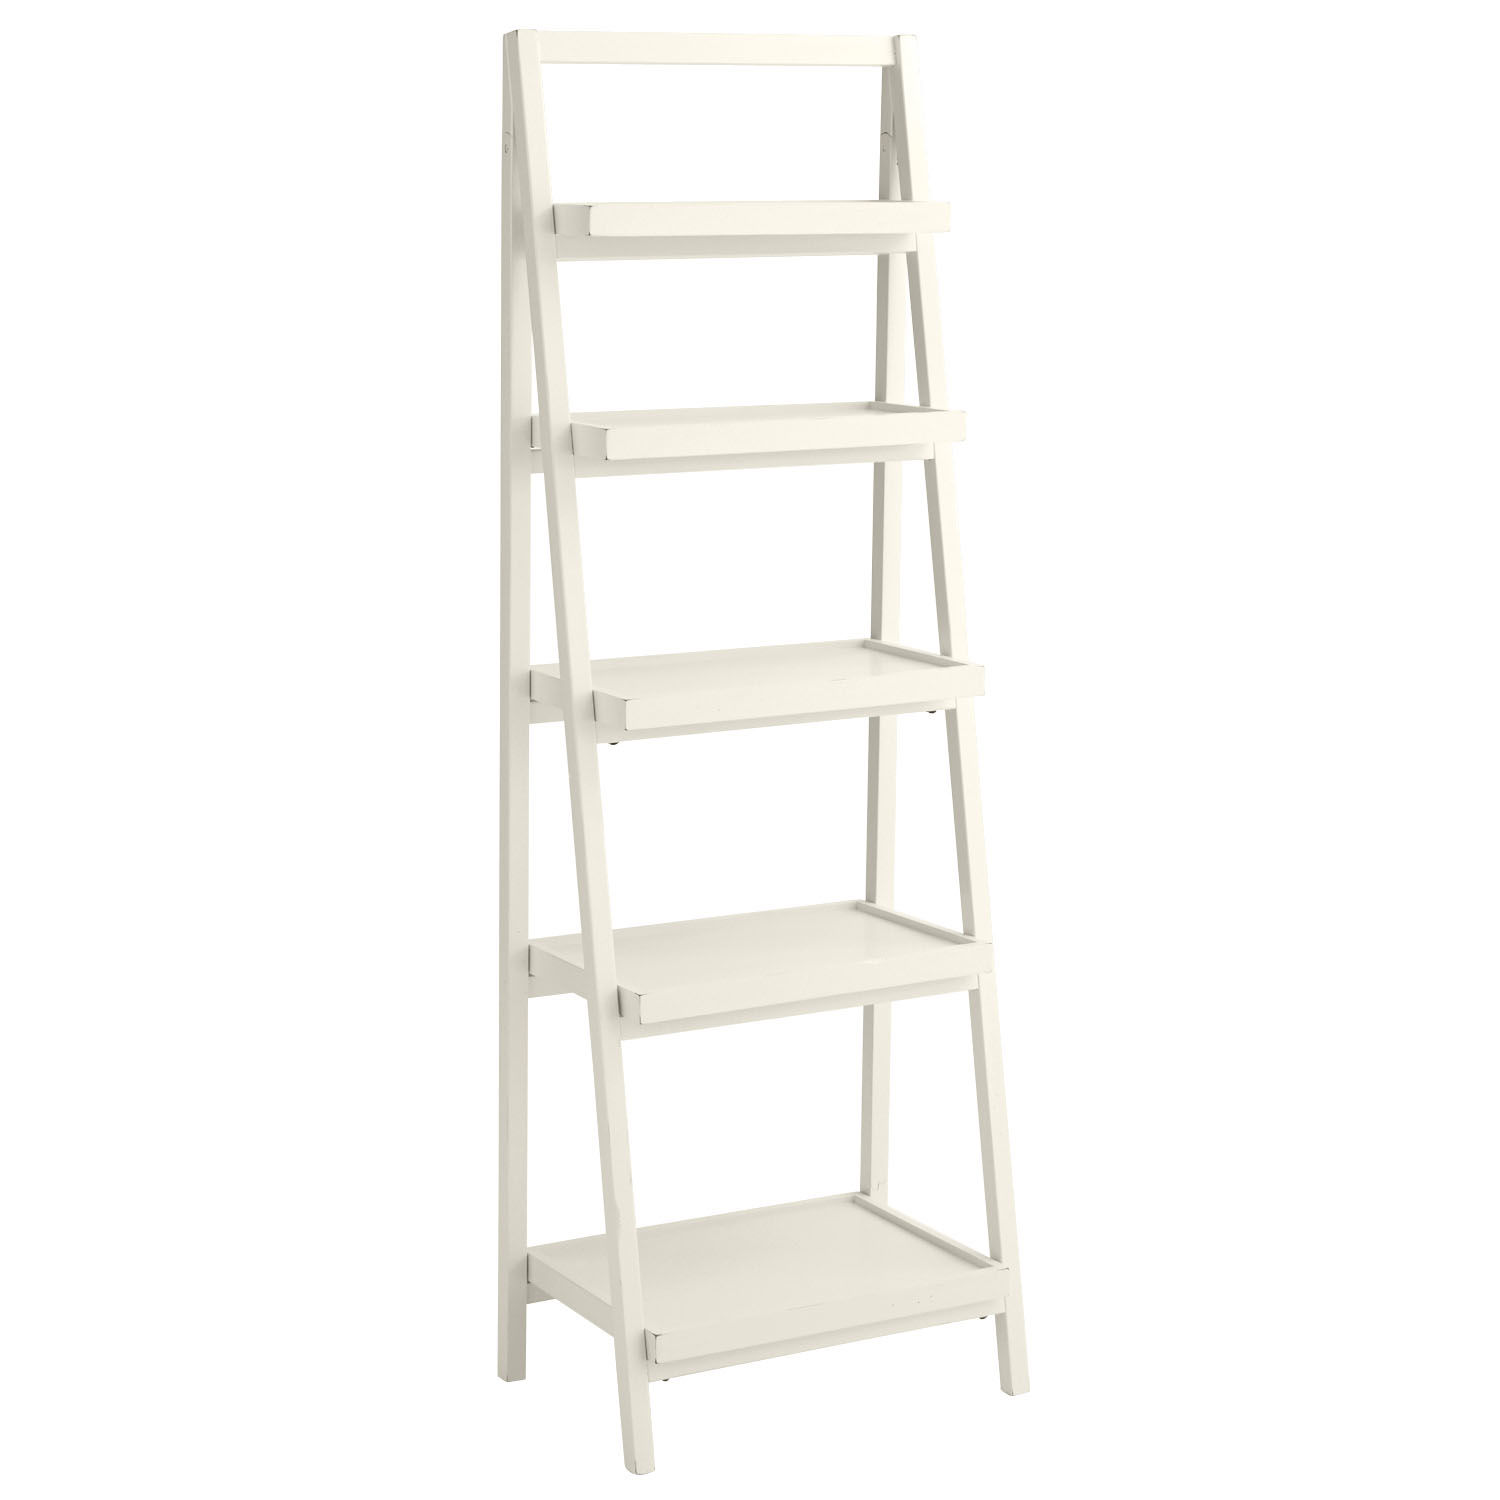 Image of: Antique White Bookcase Style